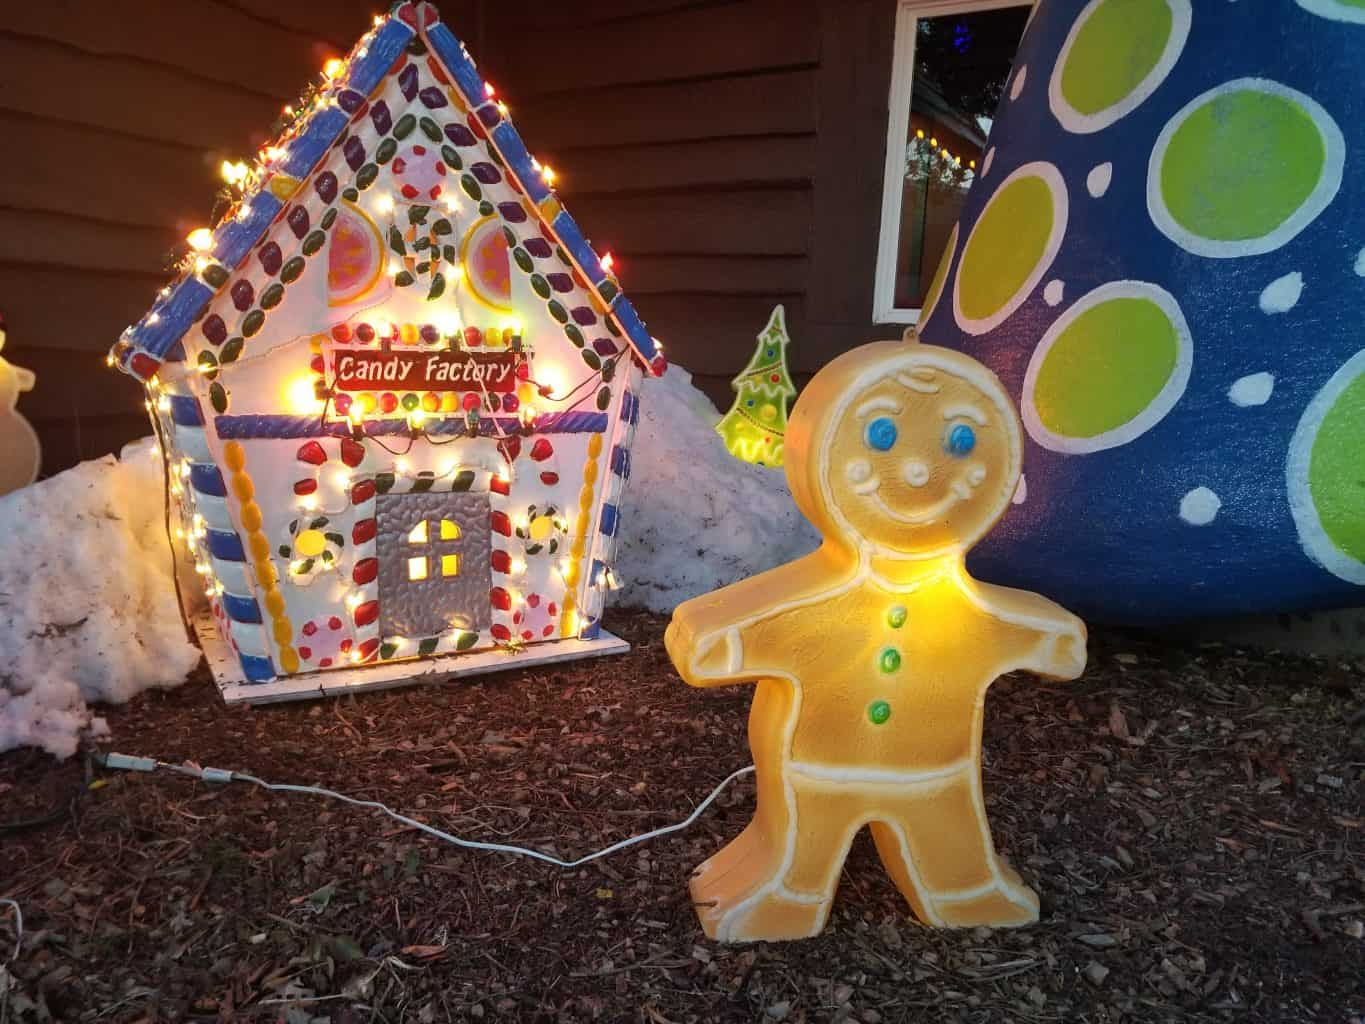 Gingerbread man and house holiday lights